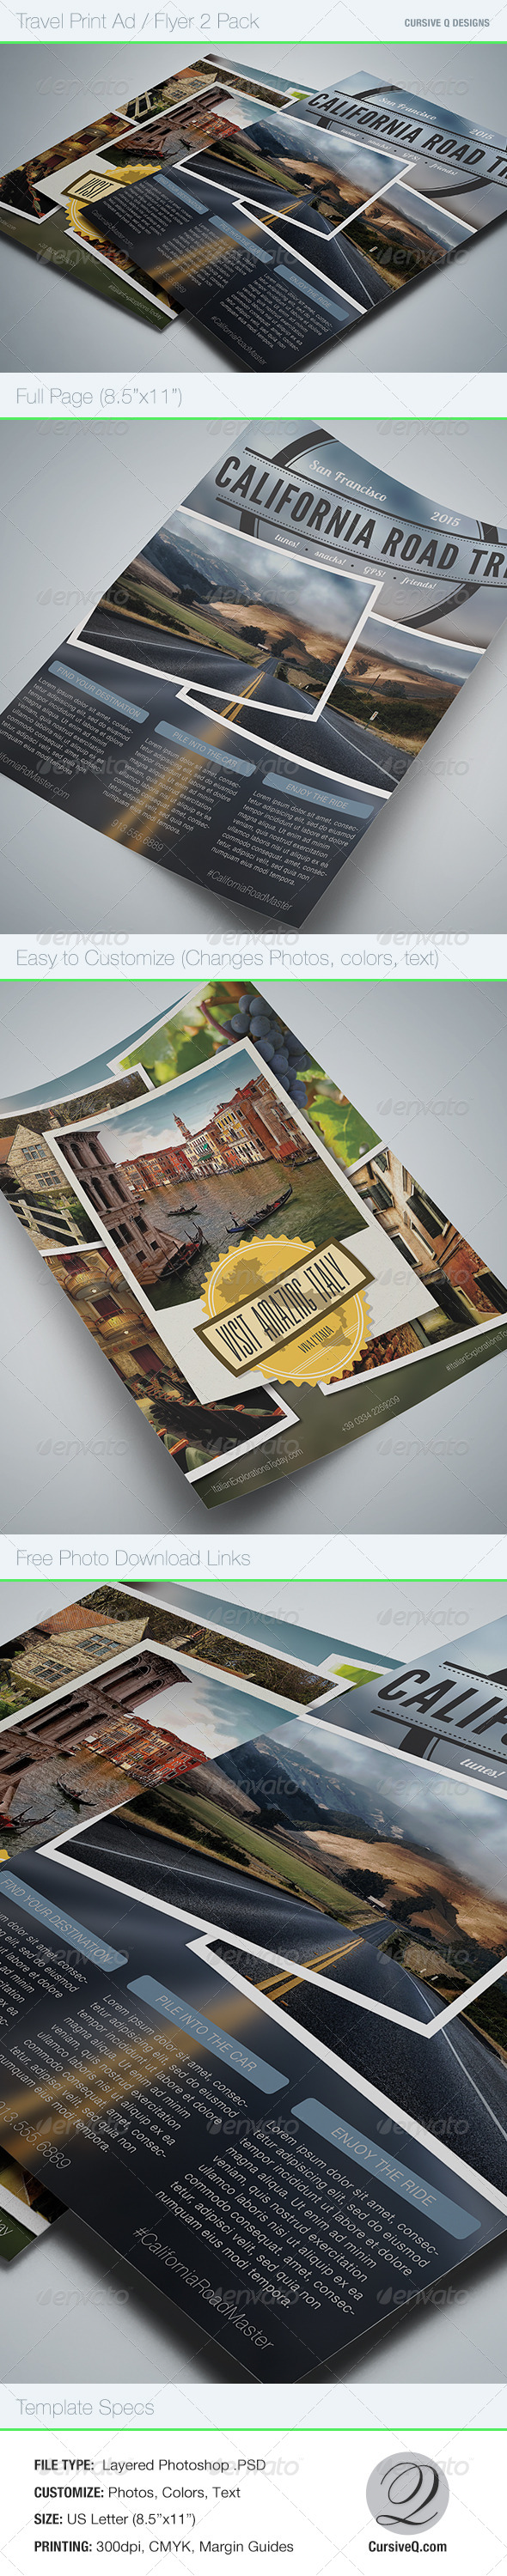 TravelAdFlyer2Pack_preview